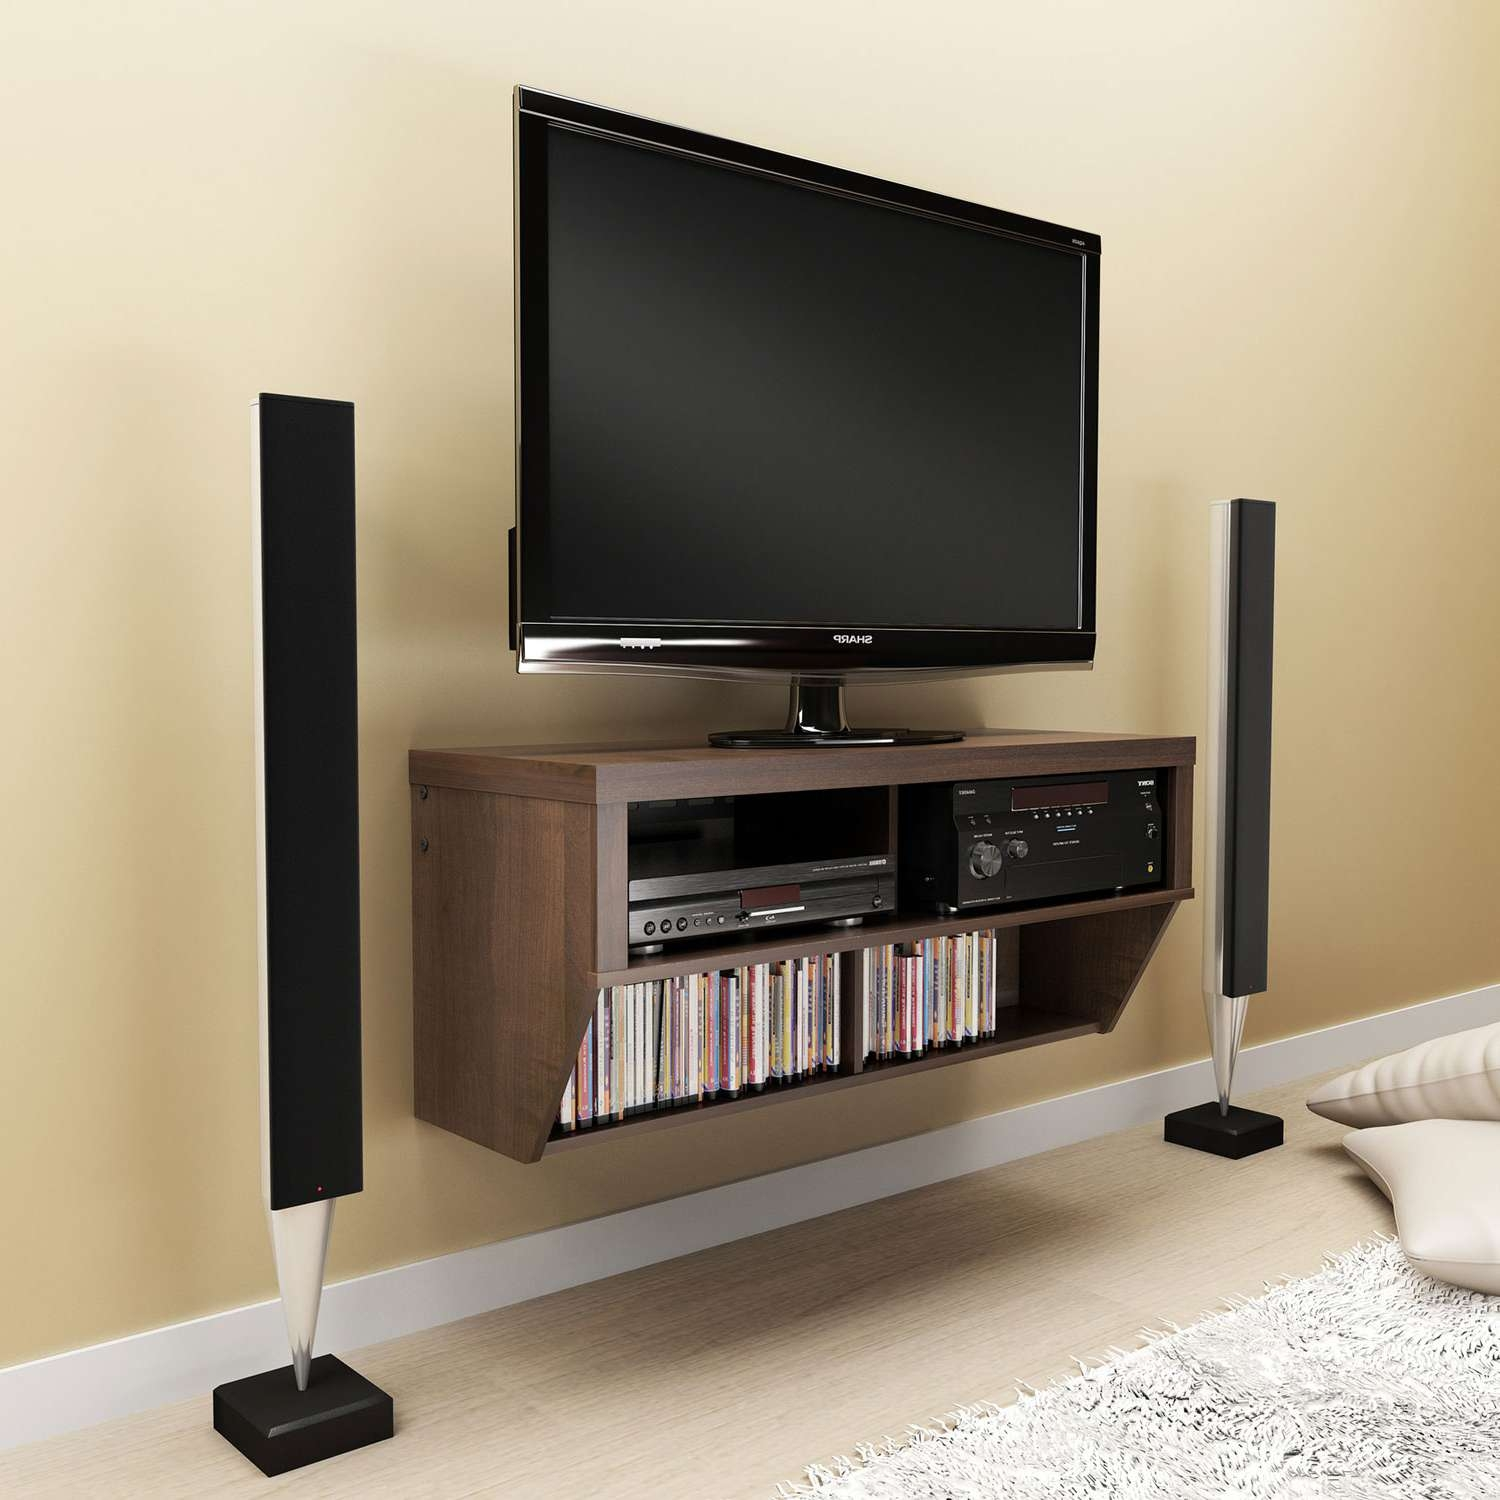 Engrossing Wooden Lcd Tv Cabinet Designs Tags : Led Tv Cabinets With 24 Inch Led Tv Stands (View 5 of 15)